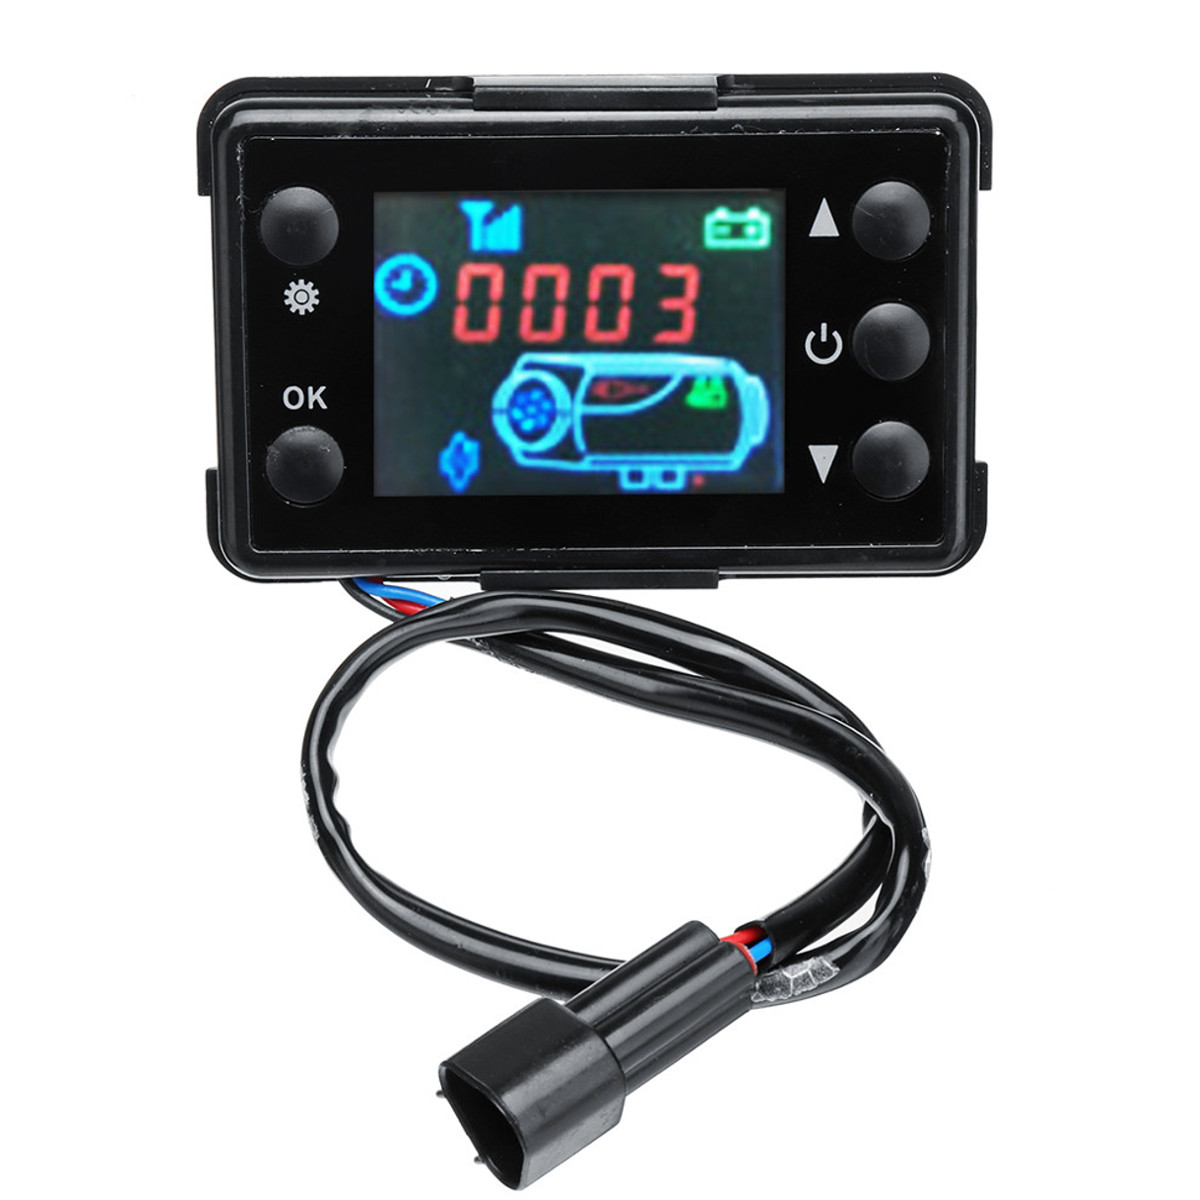 12v/24v 3/5kw Lcd Monitor Parking Heater Switch Car Heating Device Controller Universal For Car Track Air Heater Skilful Manufacture Atv,rv,boat & Other Vehicle Electric Vehicle Parts